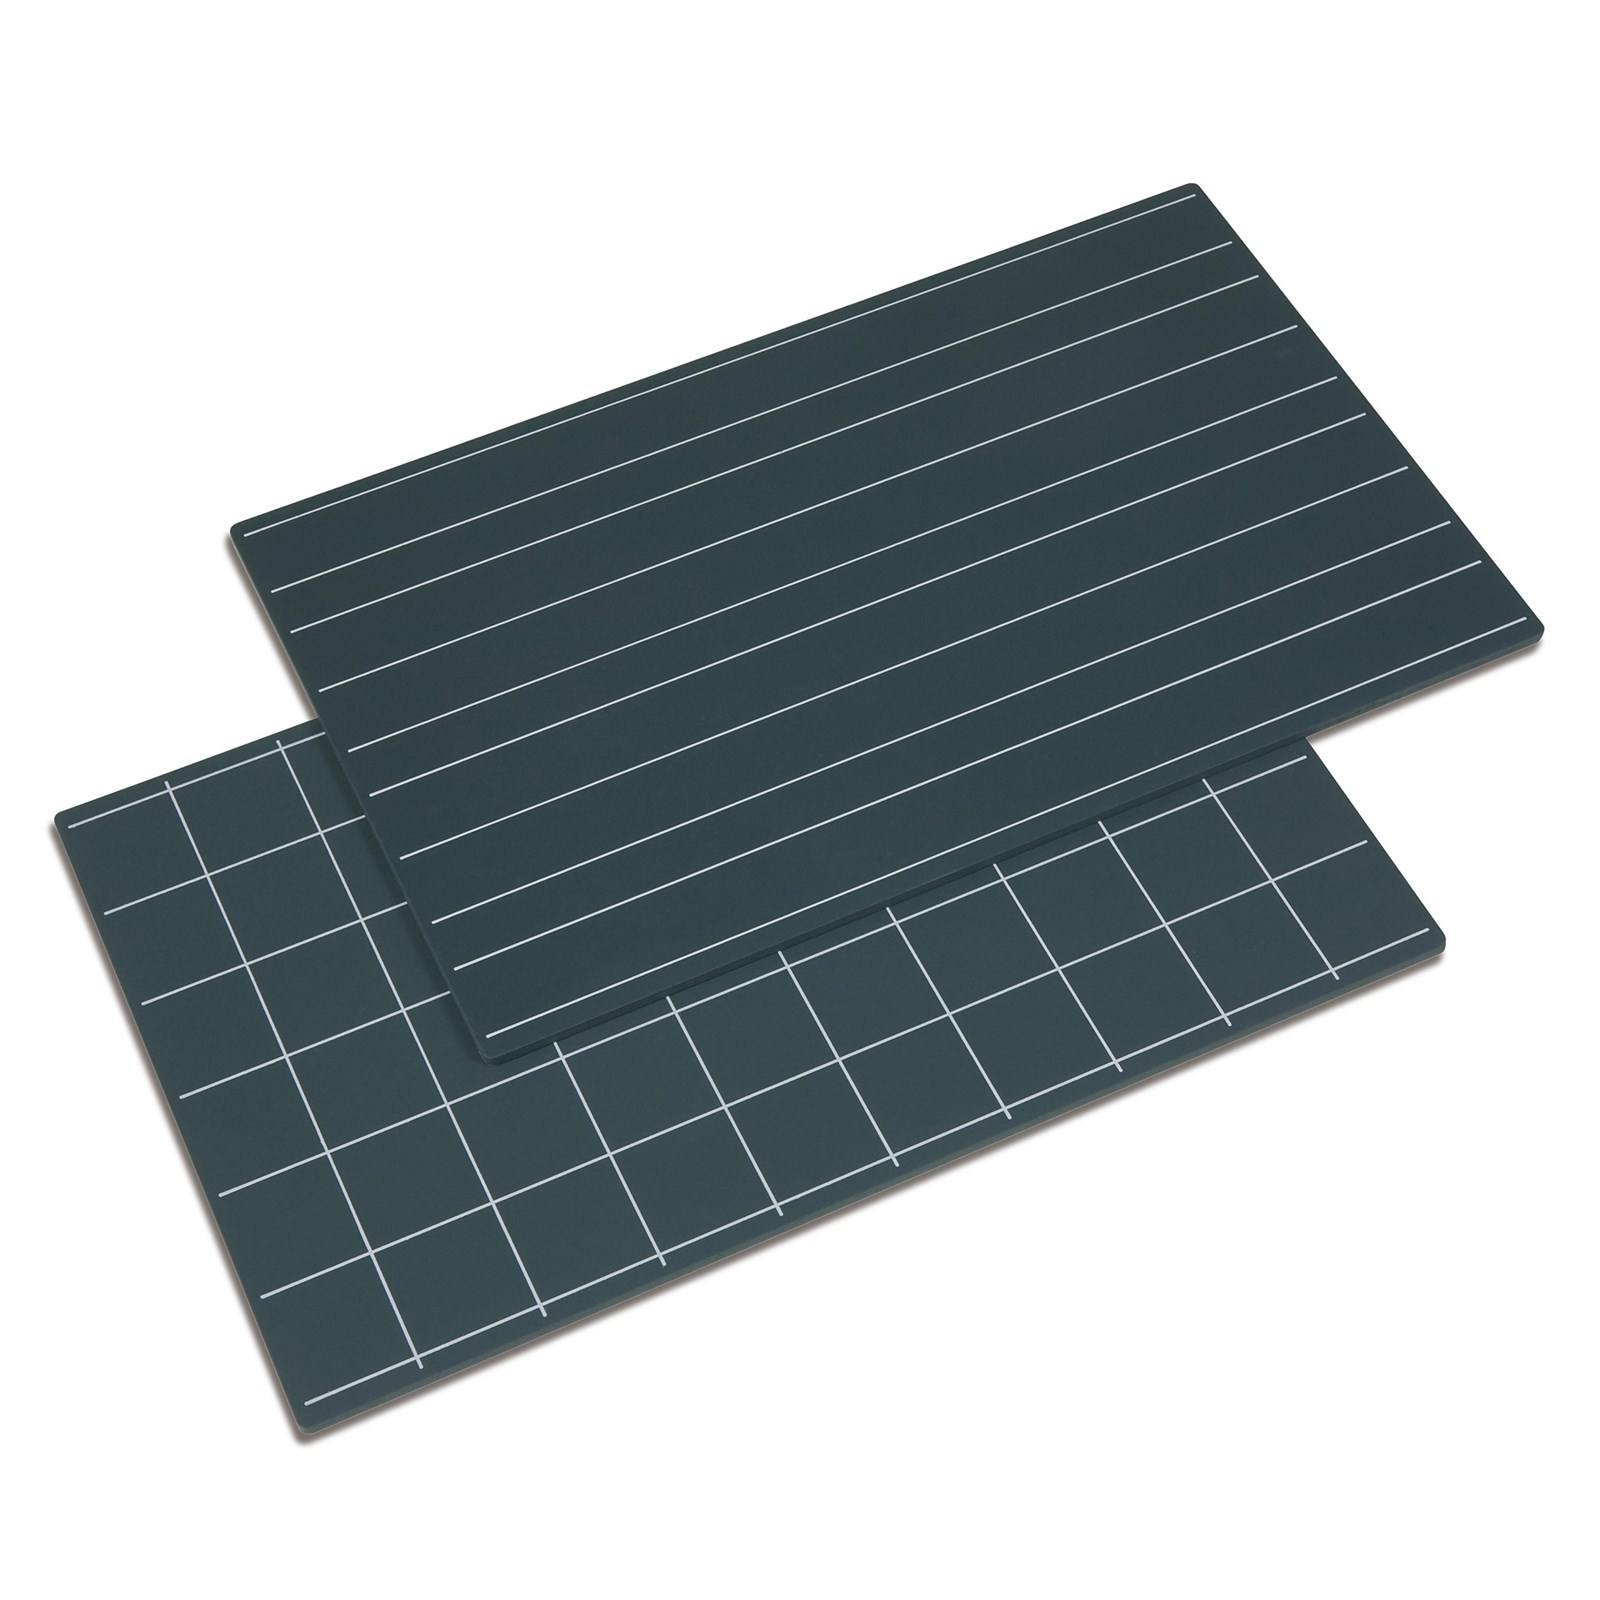 Greenboards With Double Lines And Squares: Set Of 2